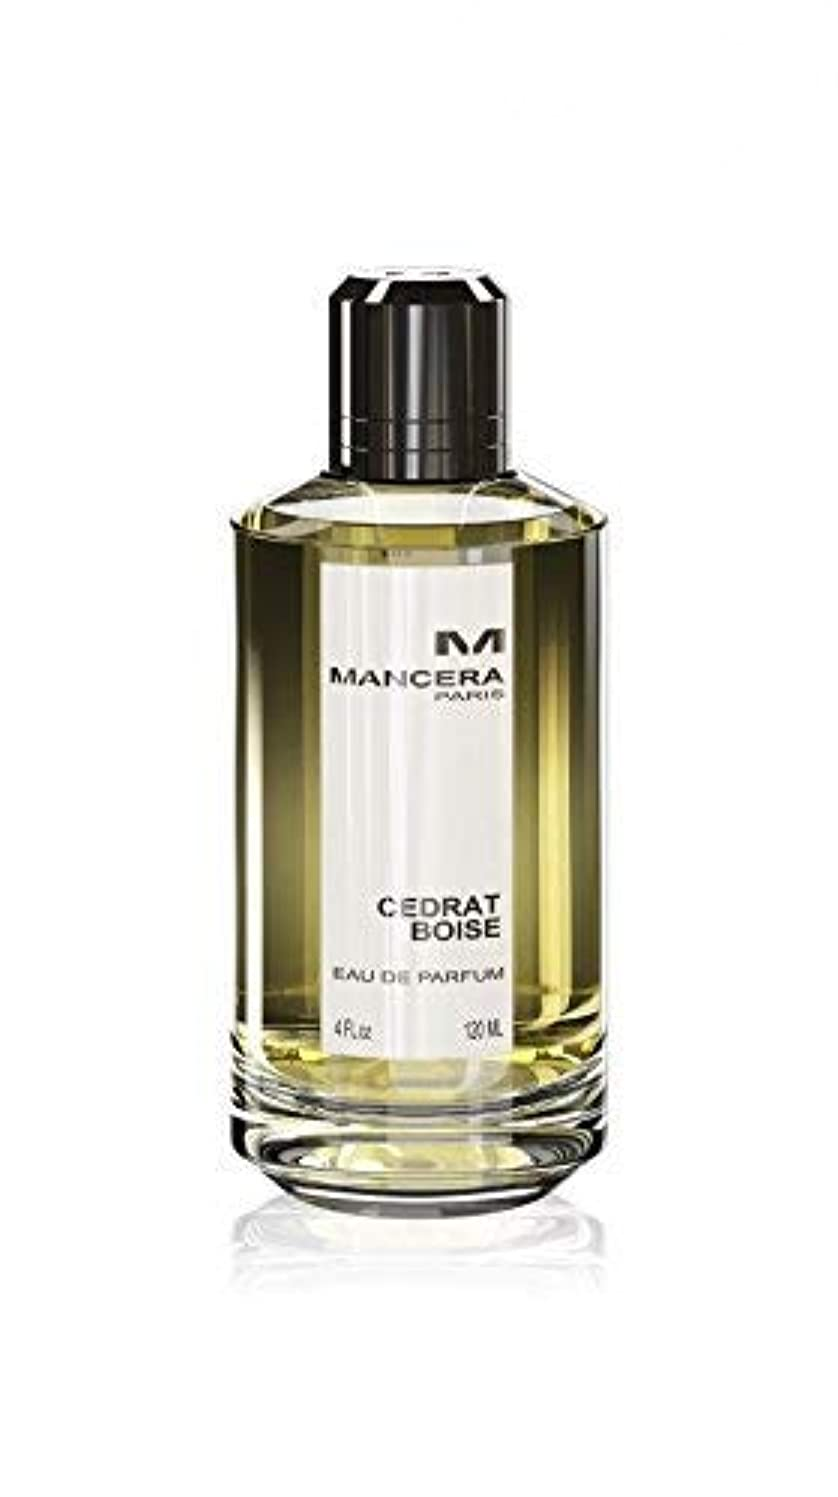 渦その後追加する100% Authentic MANCERA Cedrat Boise Eau de Perfume 120ml Made in France + 2 Mancera Samples + 30ml Skincare /...